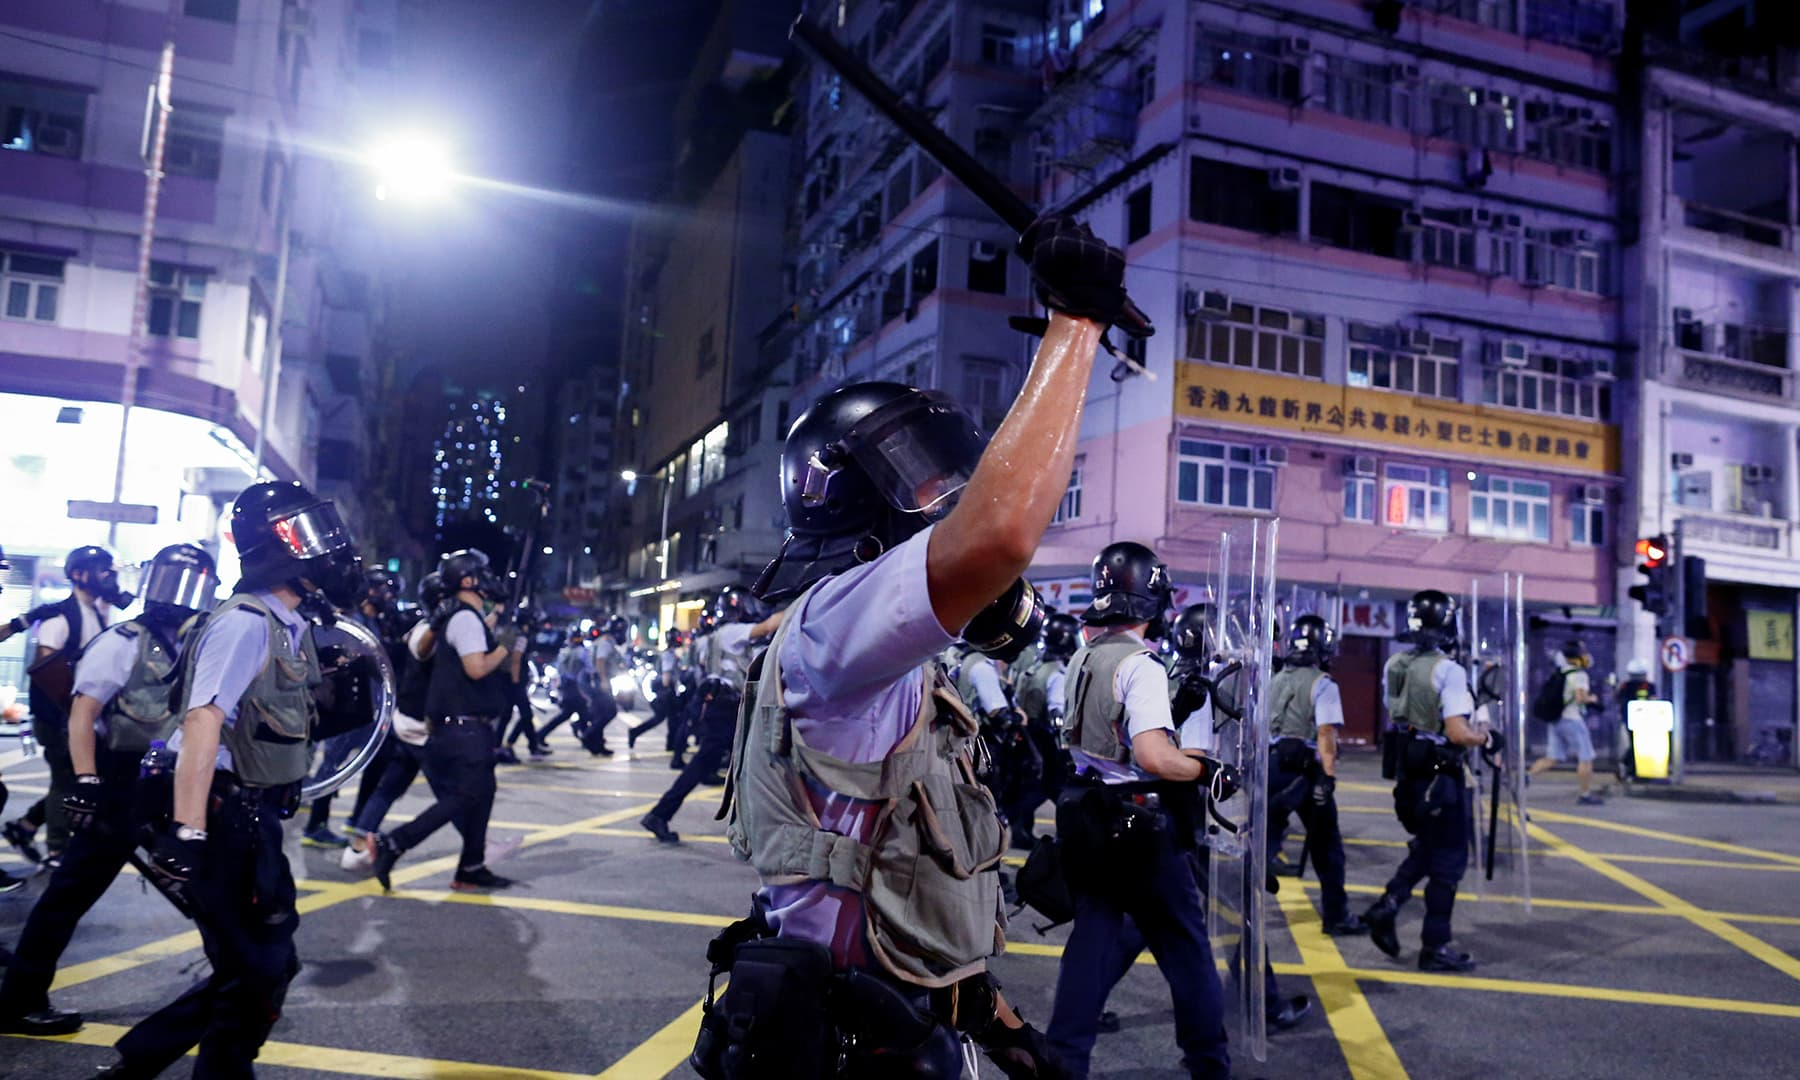 Police advance through the Sham Shui Po neighbourhood during clashes with anti-extradition bill protesters in Hong Kong on Aug 14, 2019. — Reuters